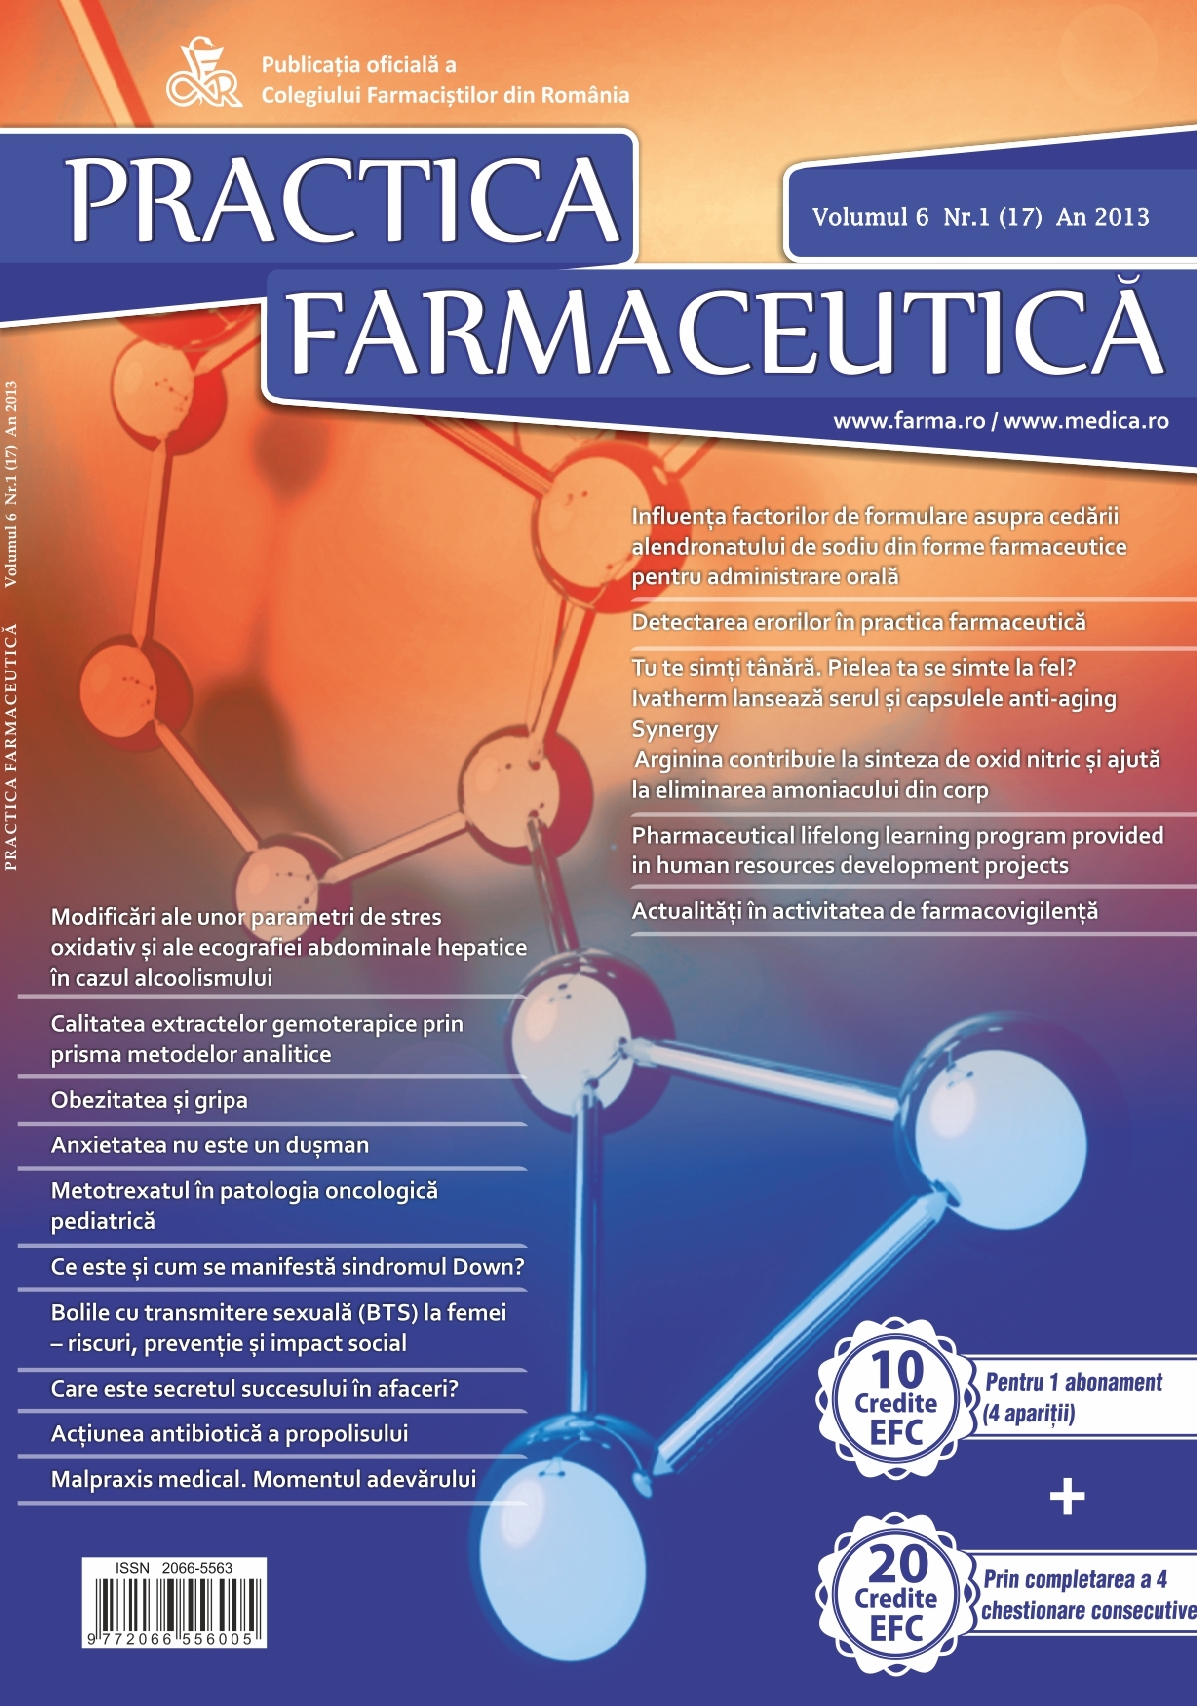 Revista Practica Farmaceutica, Vol. VI, No. 1 (17), 2013